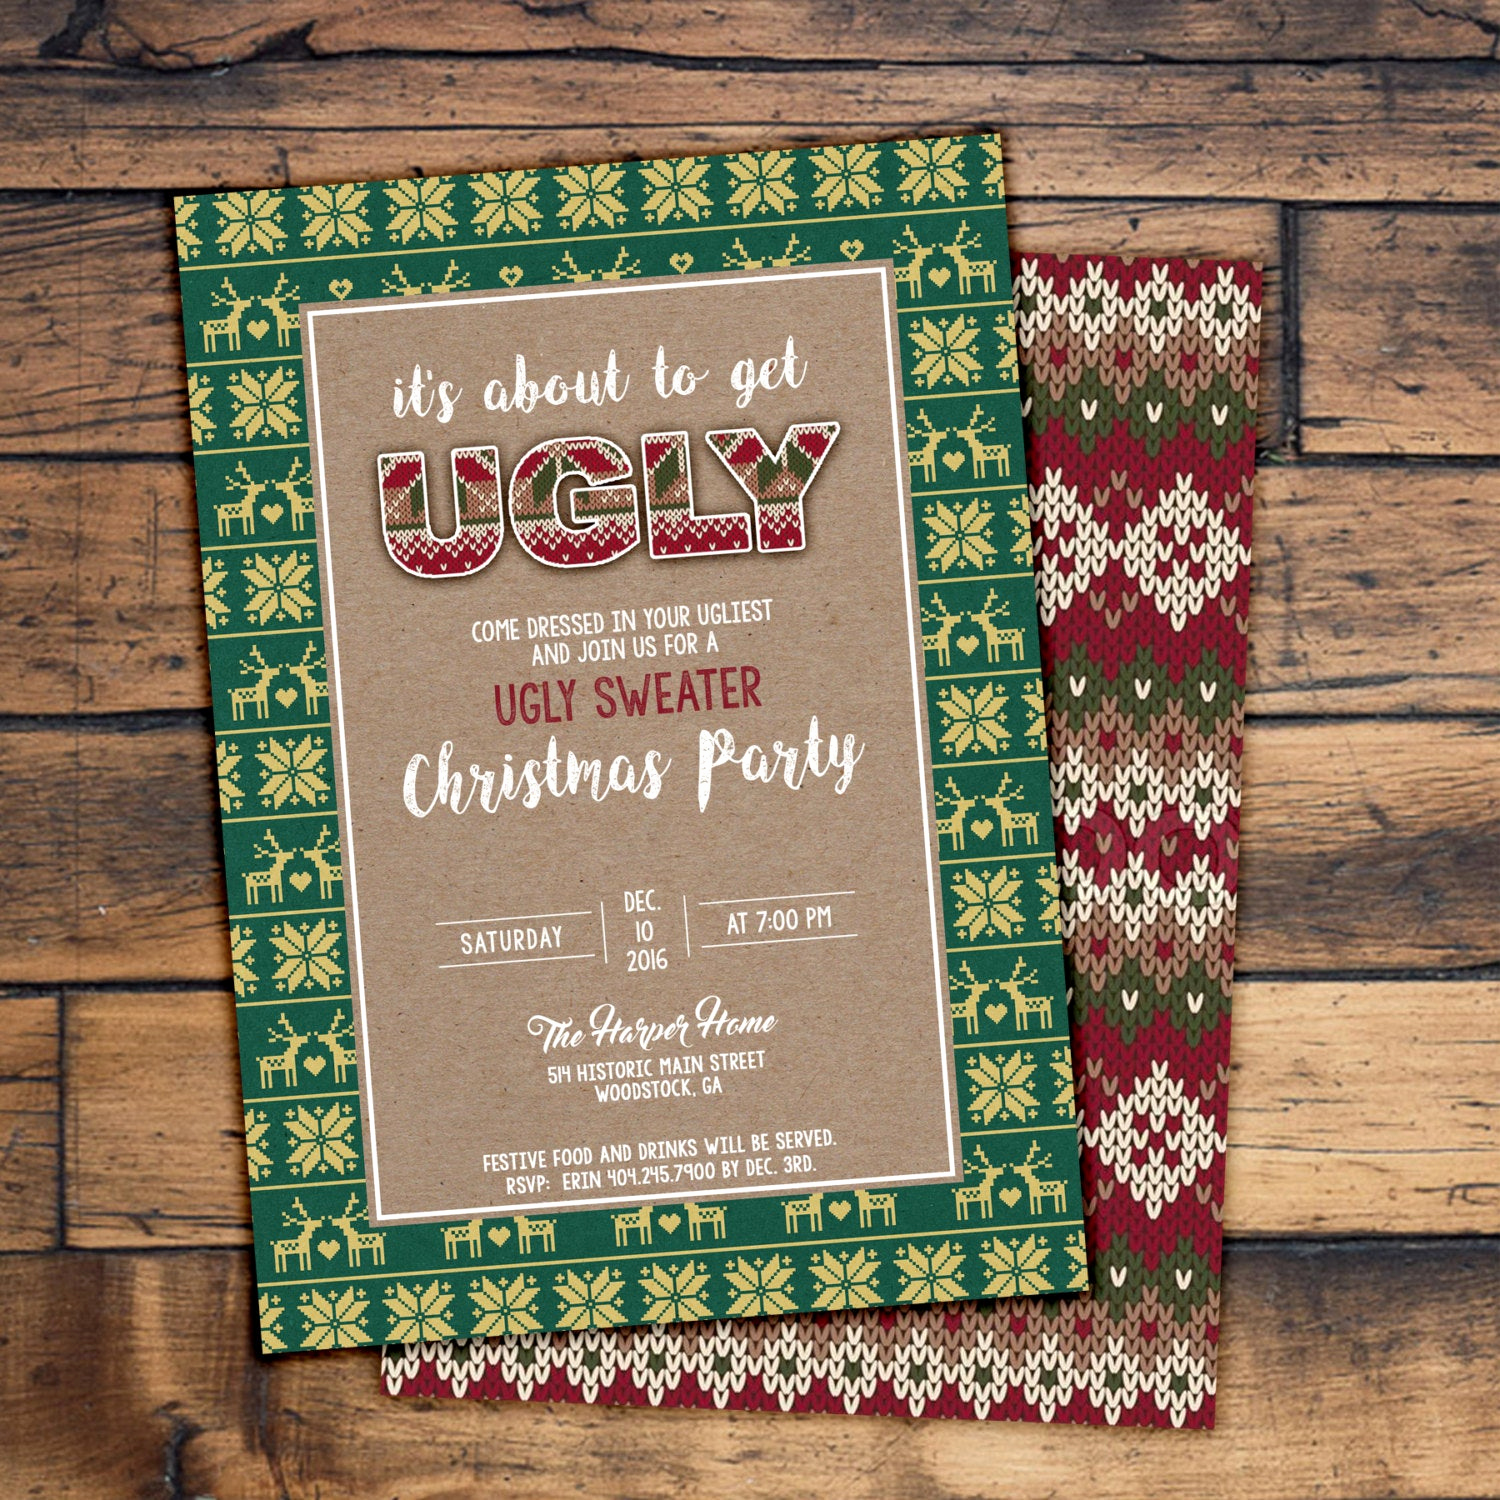 Ugly Sweater Party Invitation Wording Elegant Ugly Sweater Christmas Party Invitation Digital File or